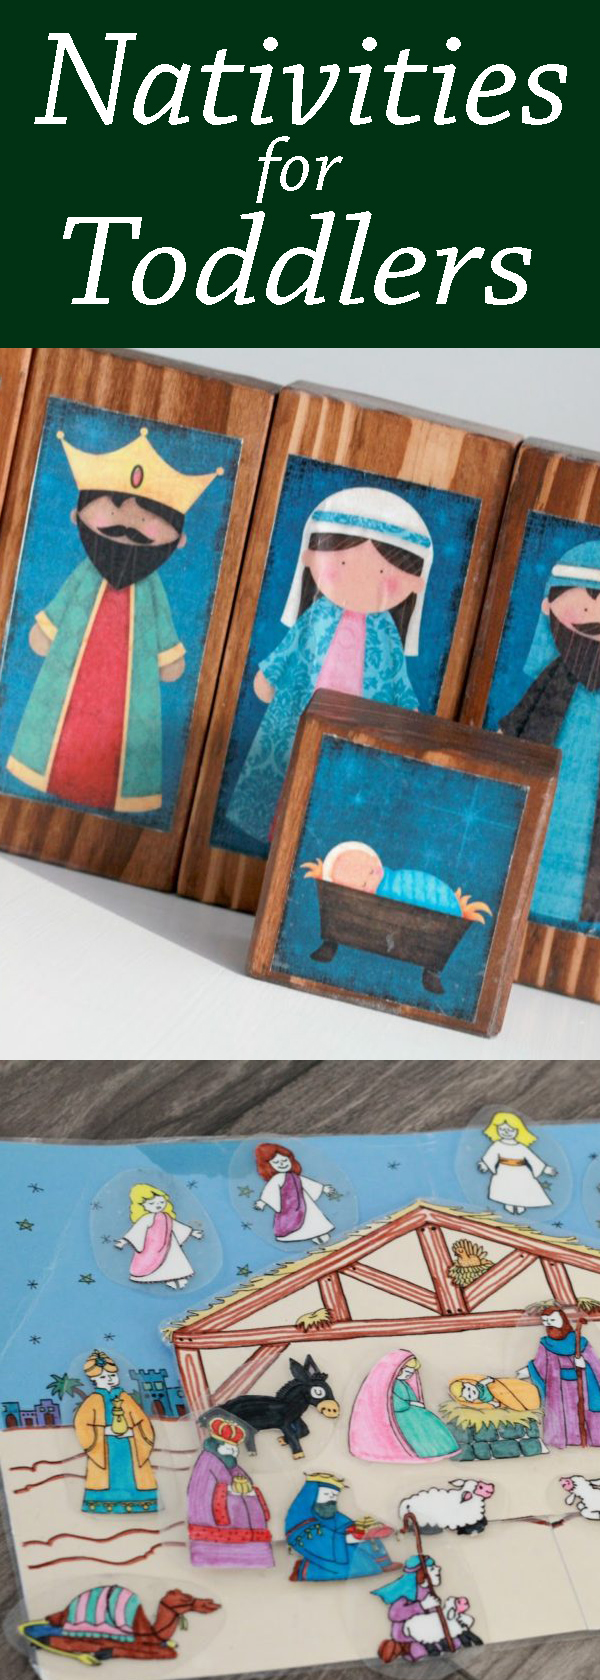 toddler nativity scenes